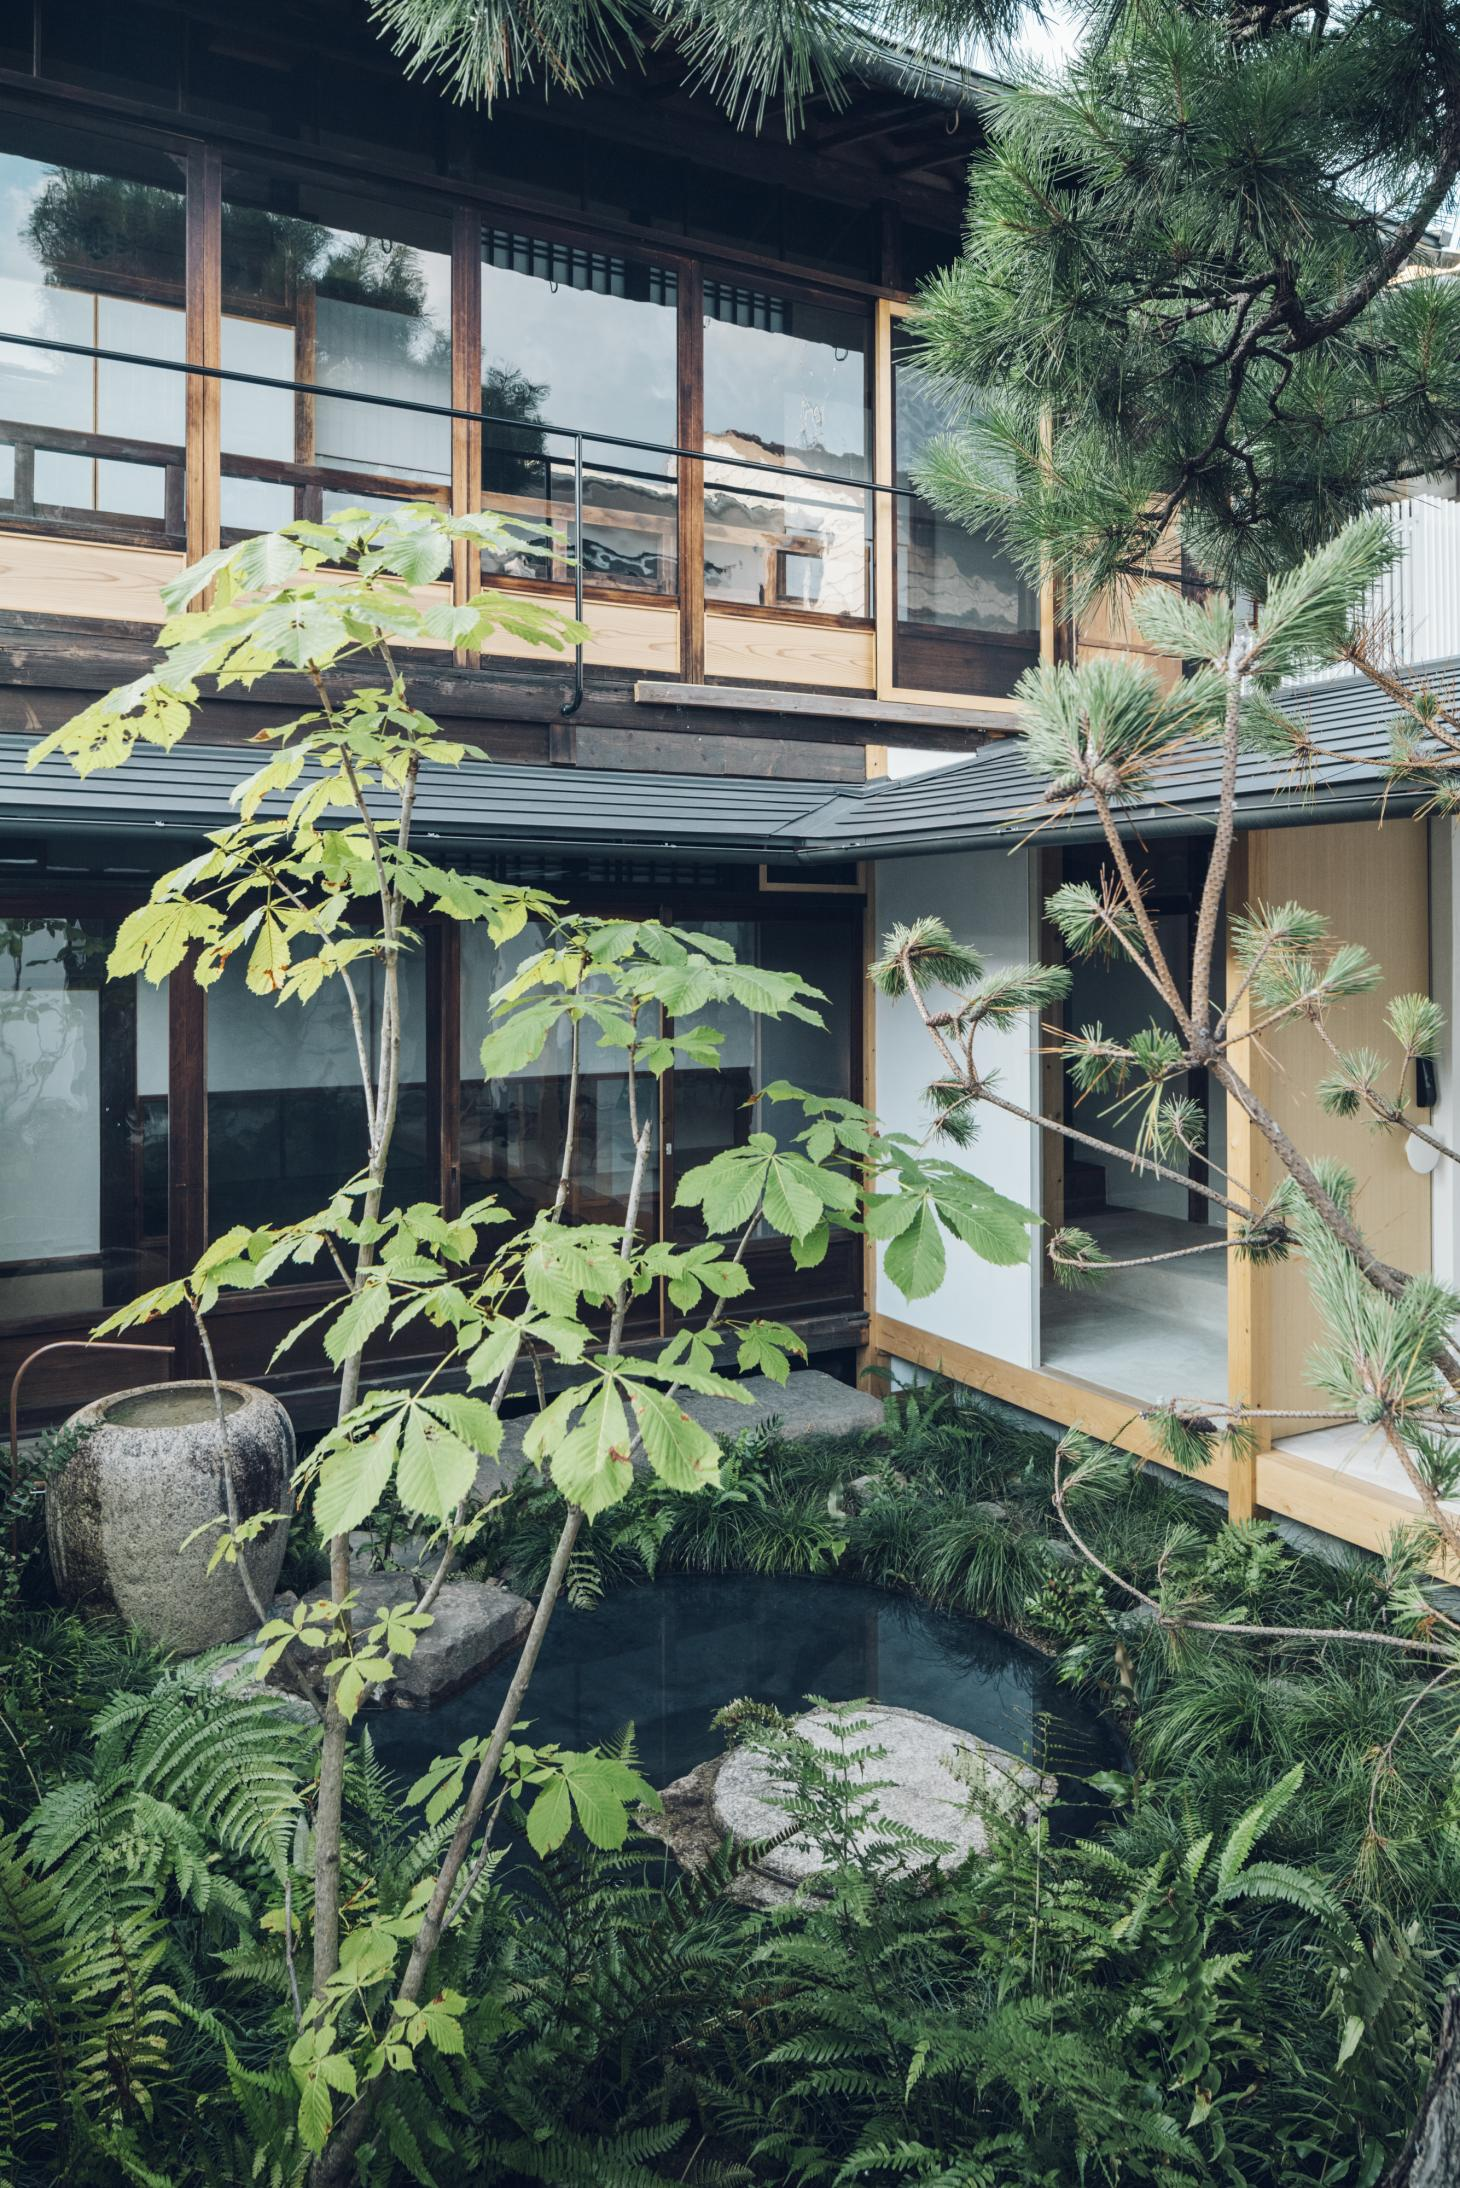 Garden view at the Suzu apartment building renovation by Bonbonma